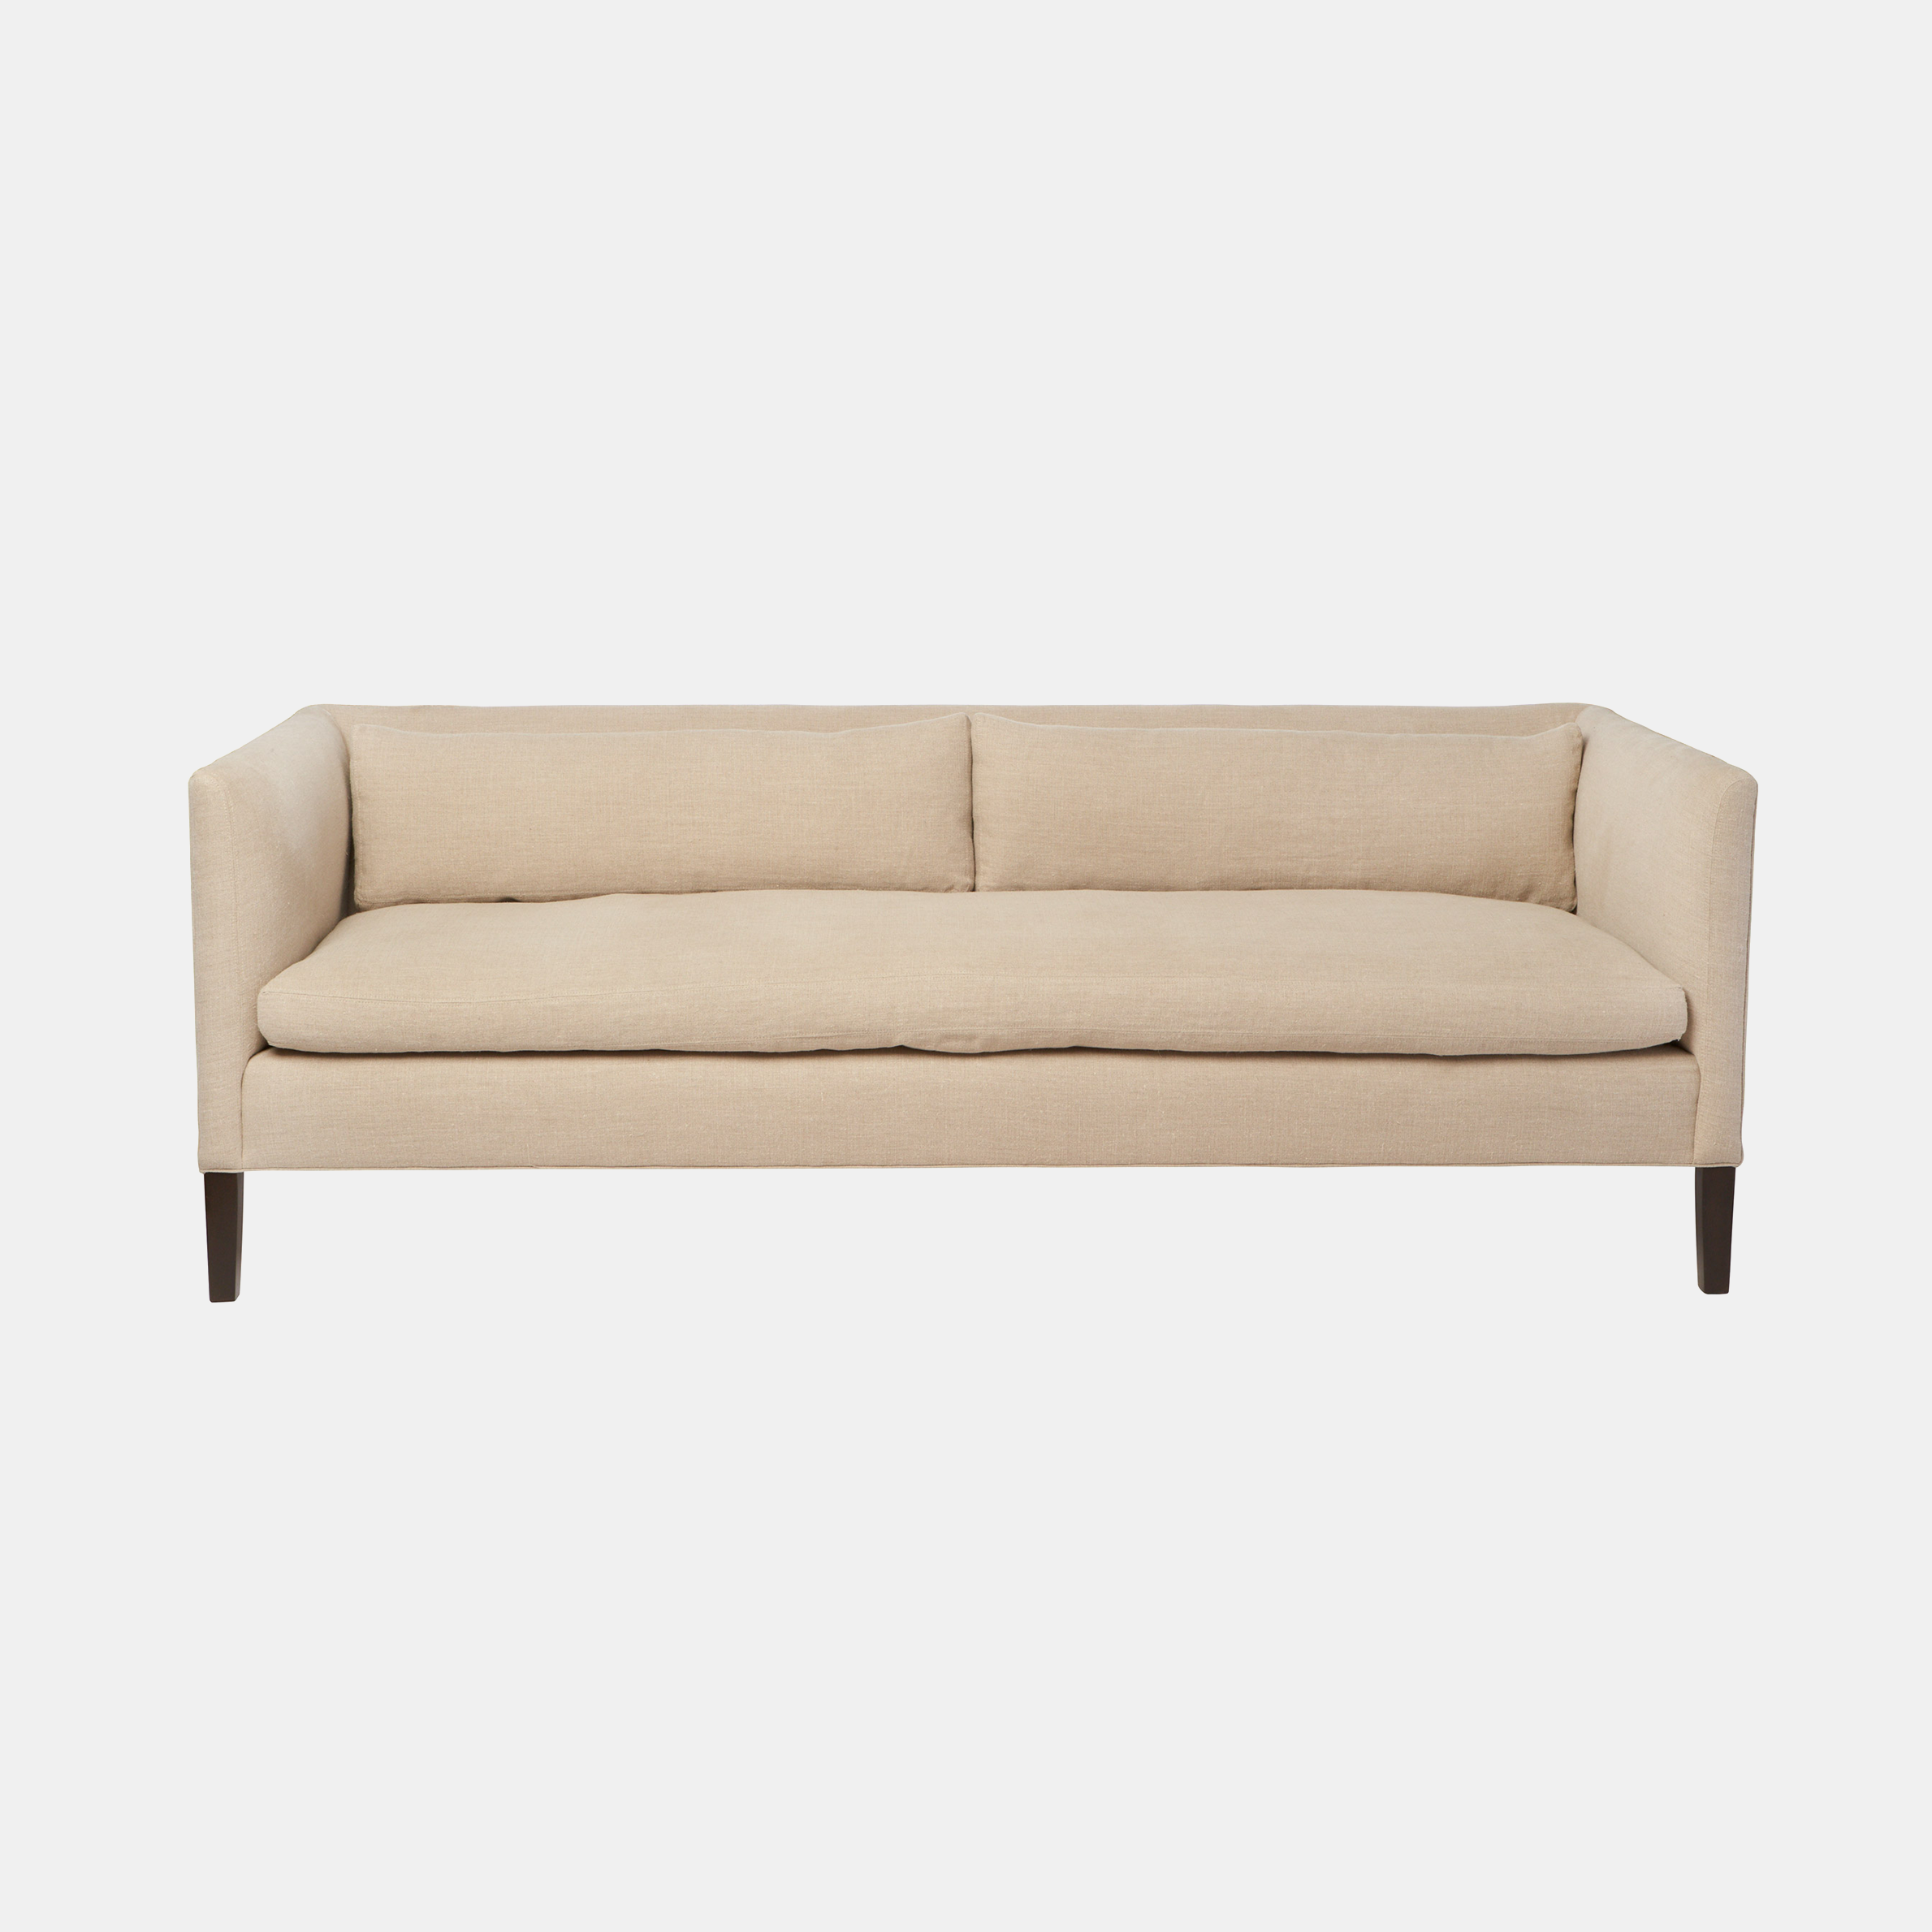 """Stewart Sofa  72""""w x 31""""h x 34""""d 80""""w x 31""""h x 34""""d 90""""w x 31""""h x 34""""d Also available slipcovered. SKU38293CSC"""